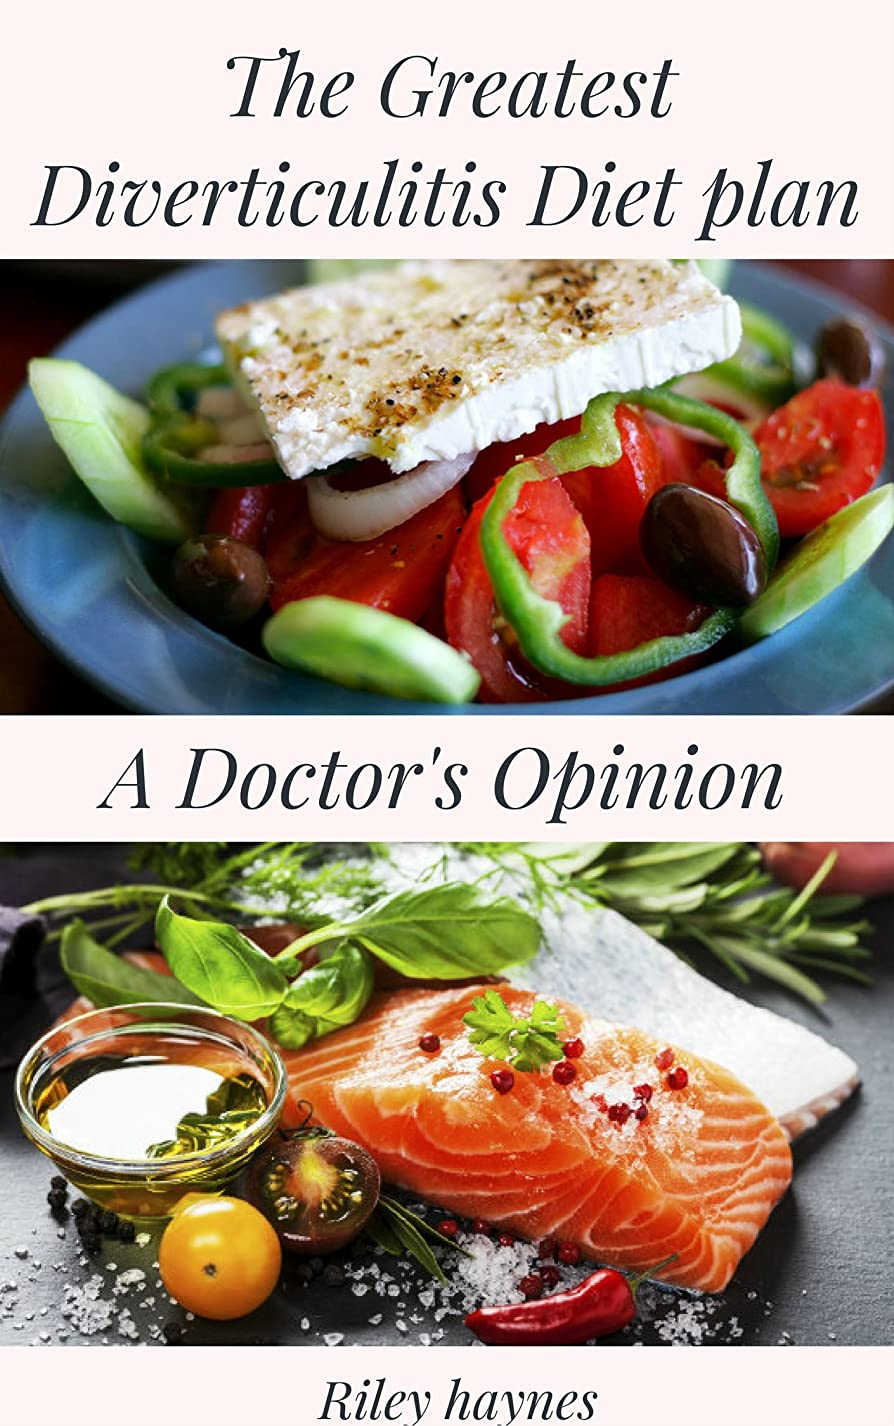 The Greatest Diverticulitis Diet plan  : The Greatest Diverticulitis Diet plan  A Doctor's Opinion (English Edition)